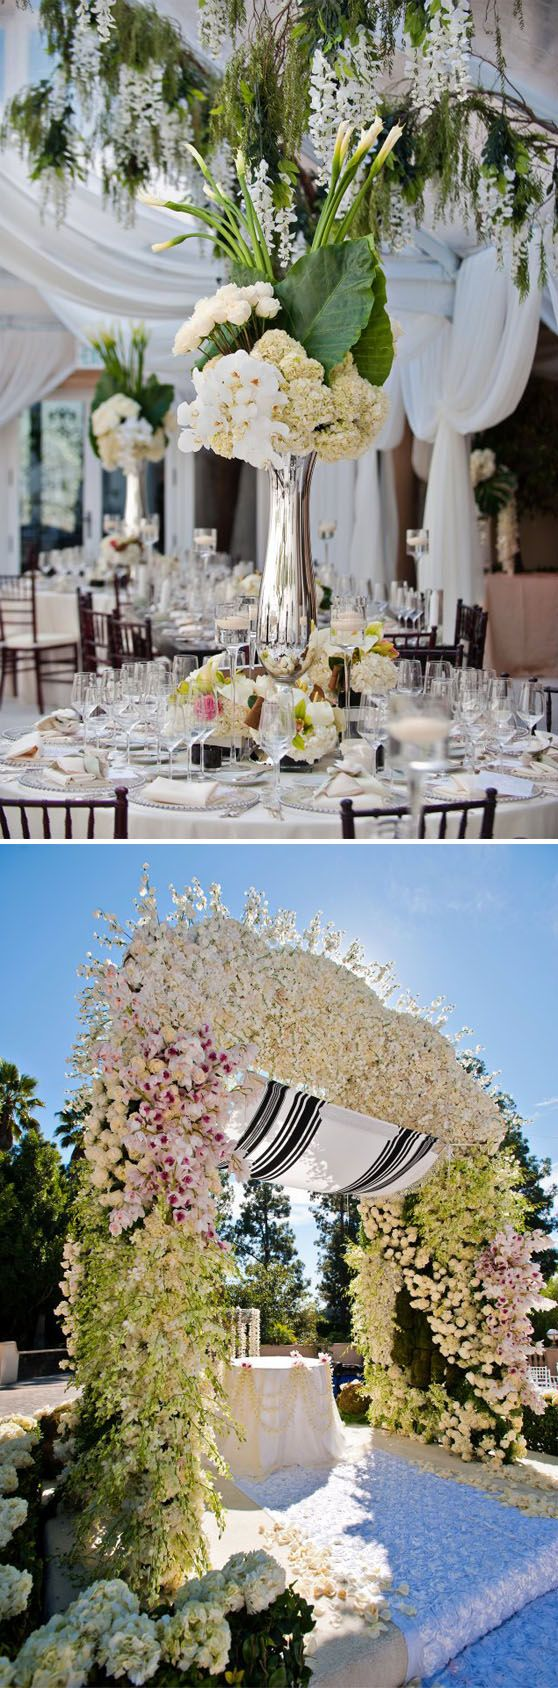 Always pushing for ideas that will take the experience outside the box is what keeps LA Premier at the top of the list for West Coast brides.